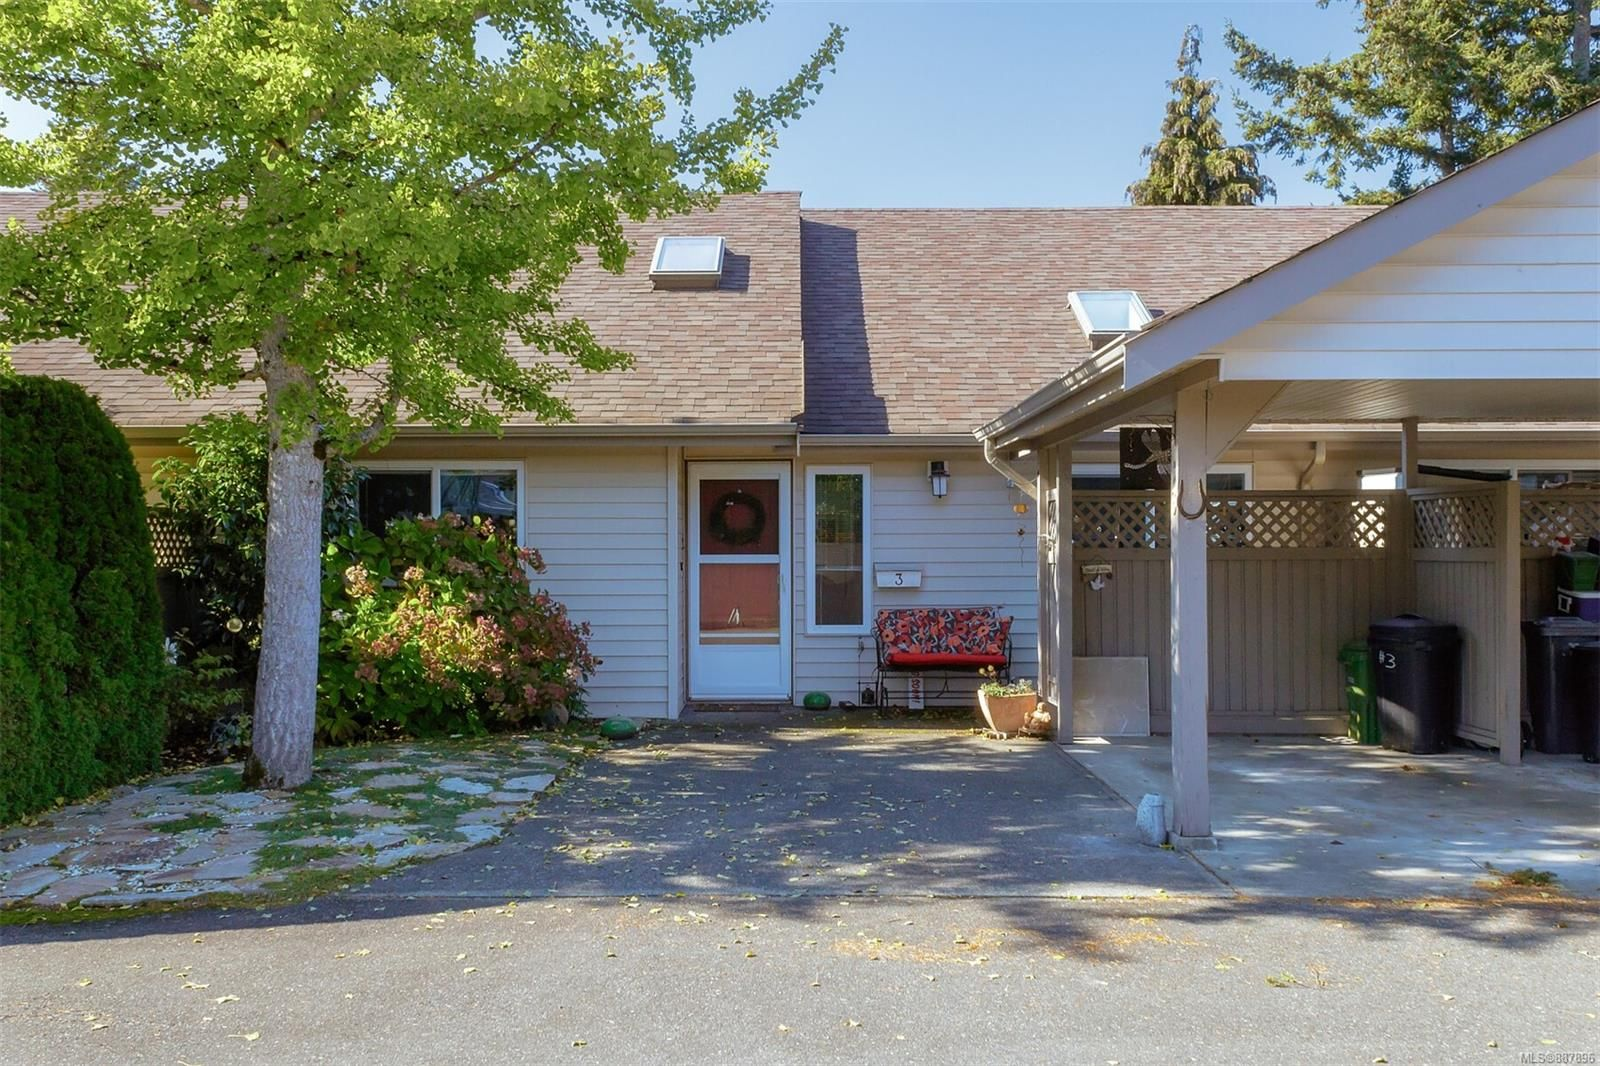 Main Photo: 3 2146 Malaview Ave in Sidney: Si Sidney North-East Row/Townhouse for sale : MLS®# 887896